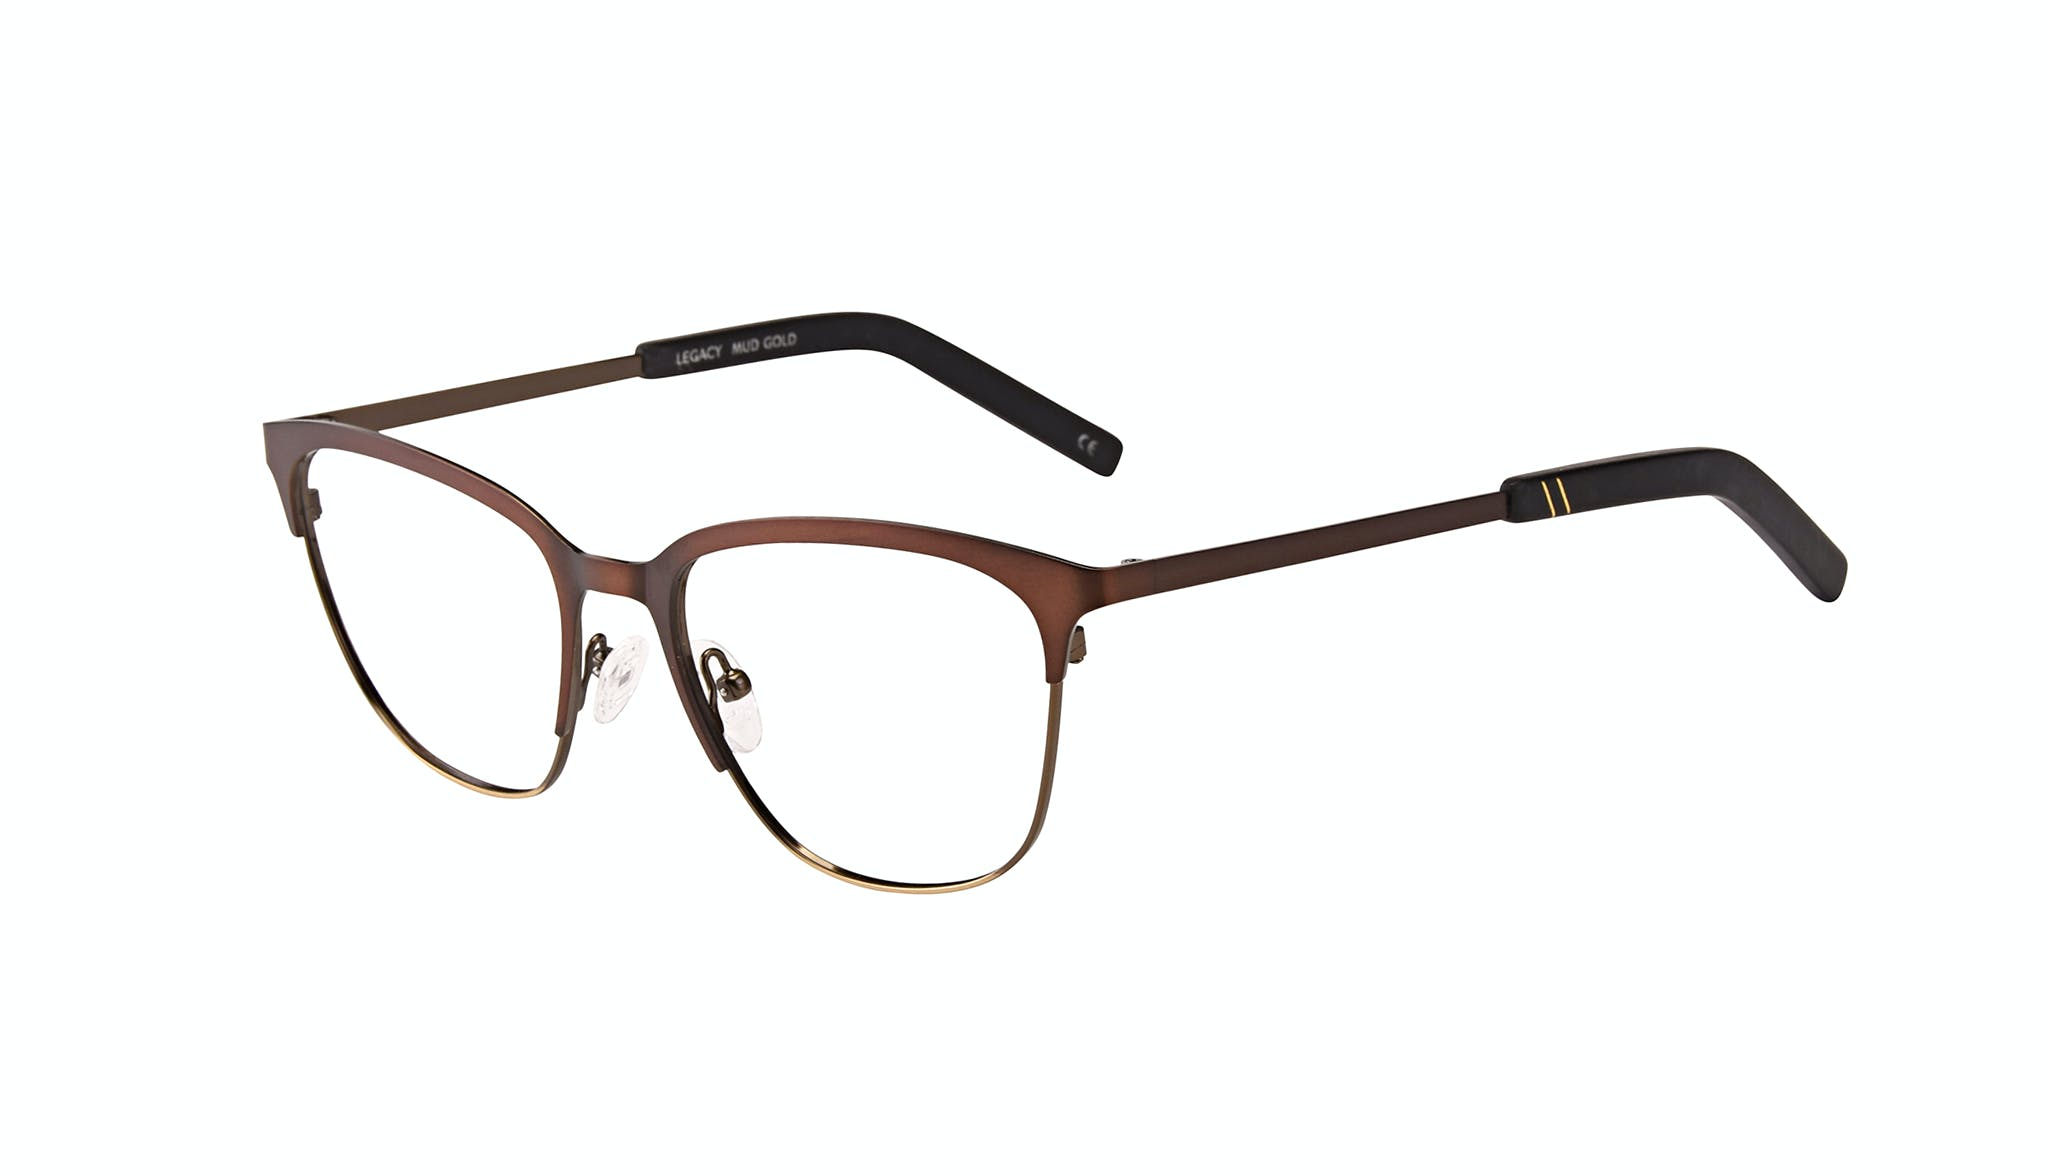 Affordable Fashion Glasses Rectangle Eyeglasses Men Legacy Mud Gold Tilt